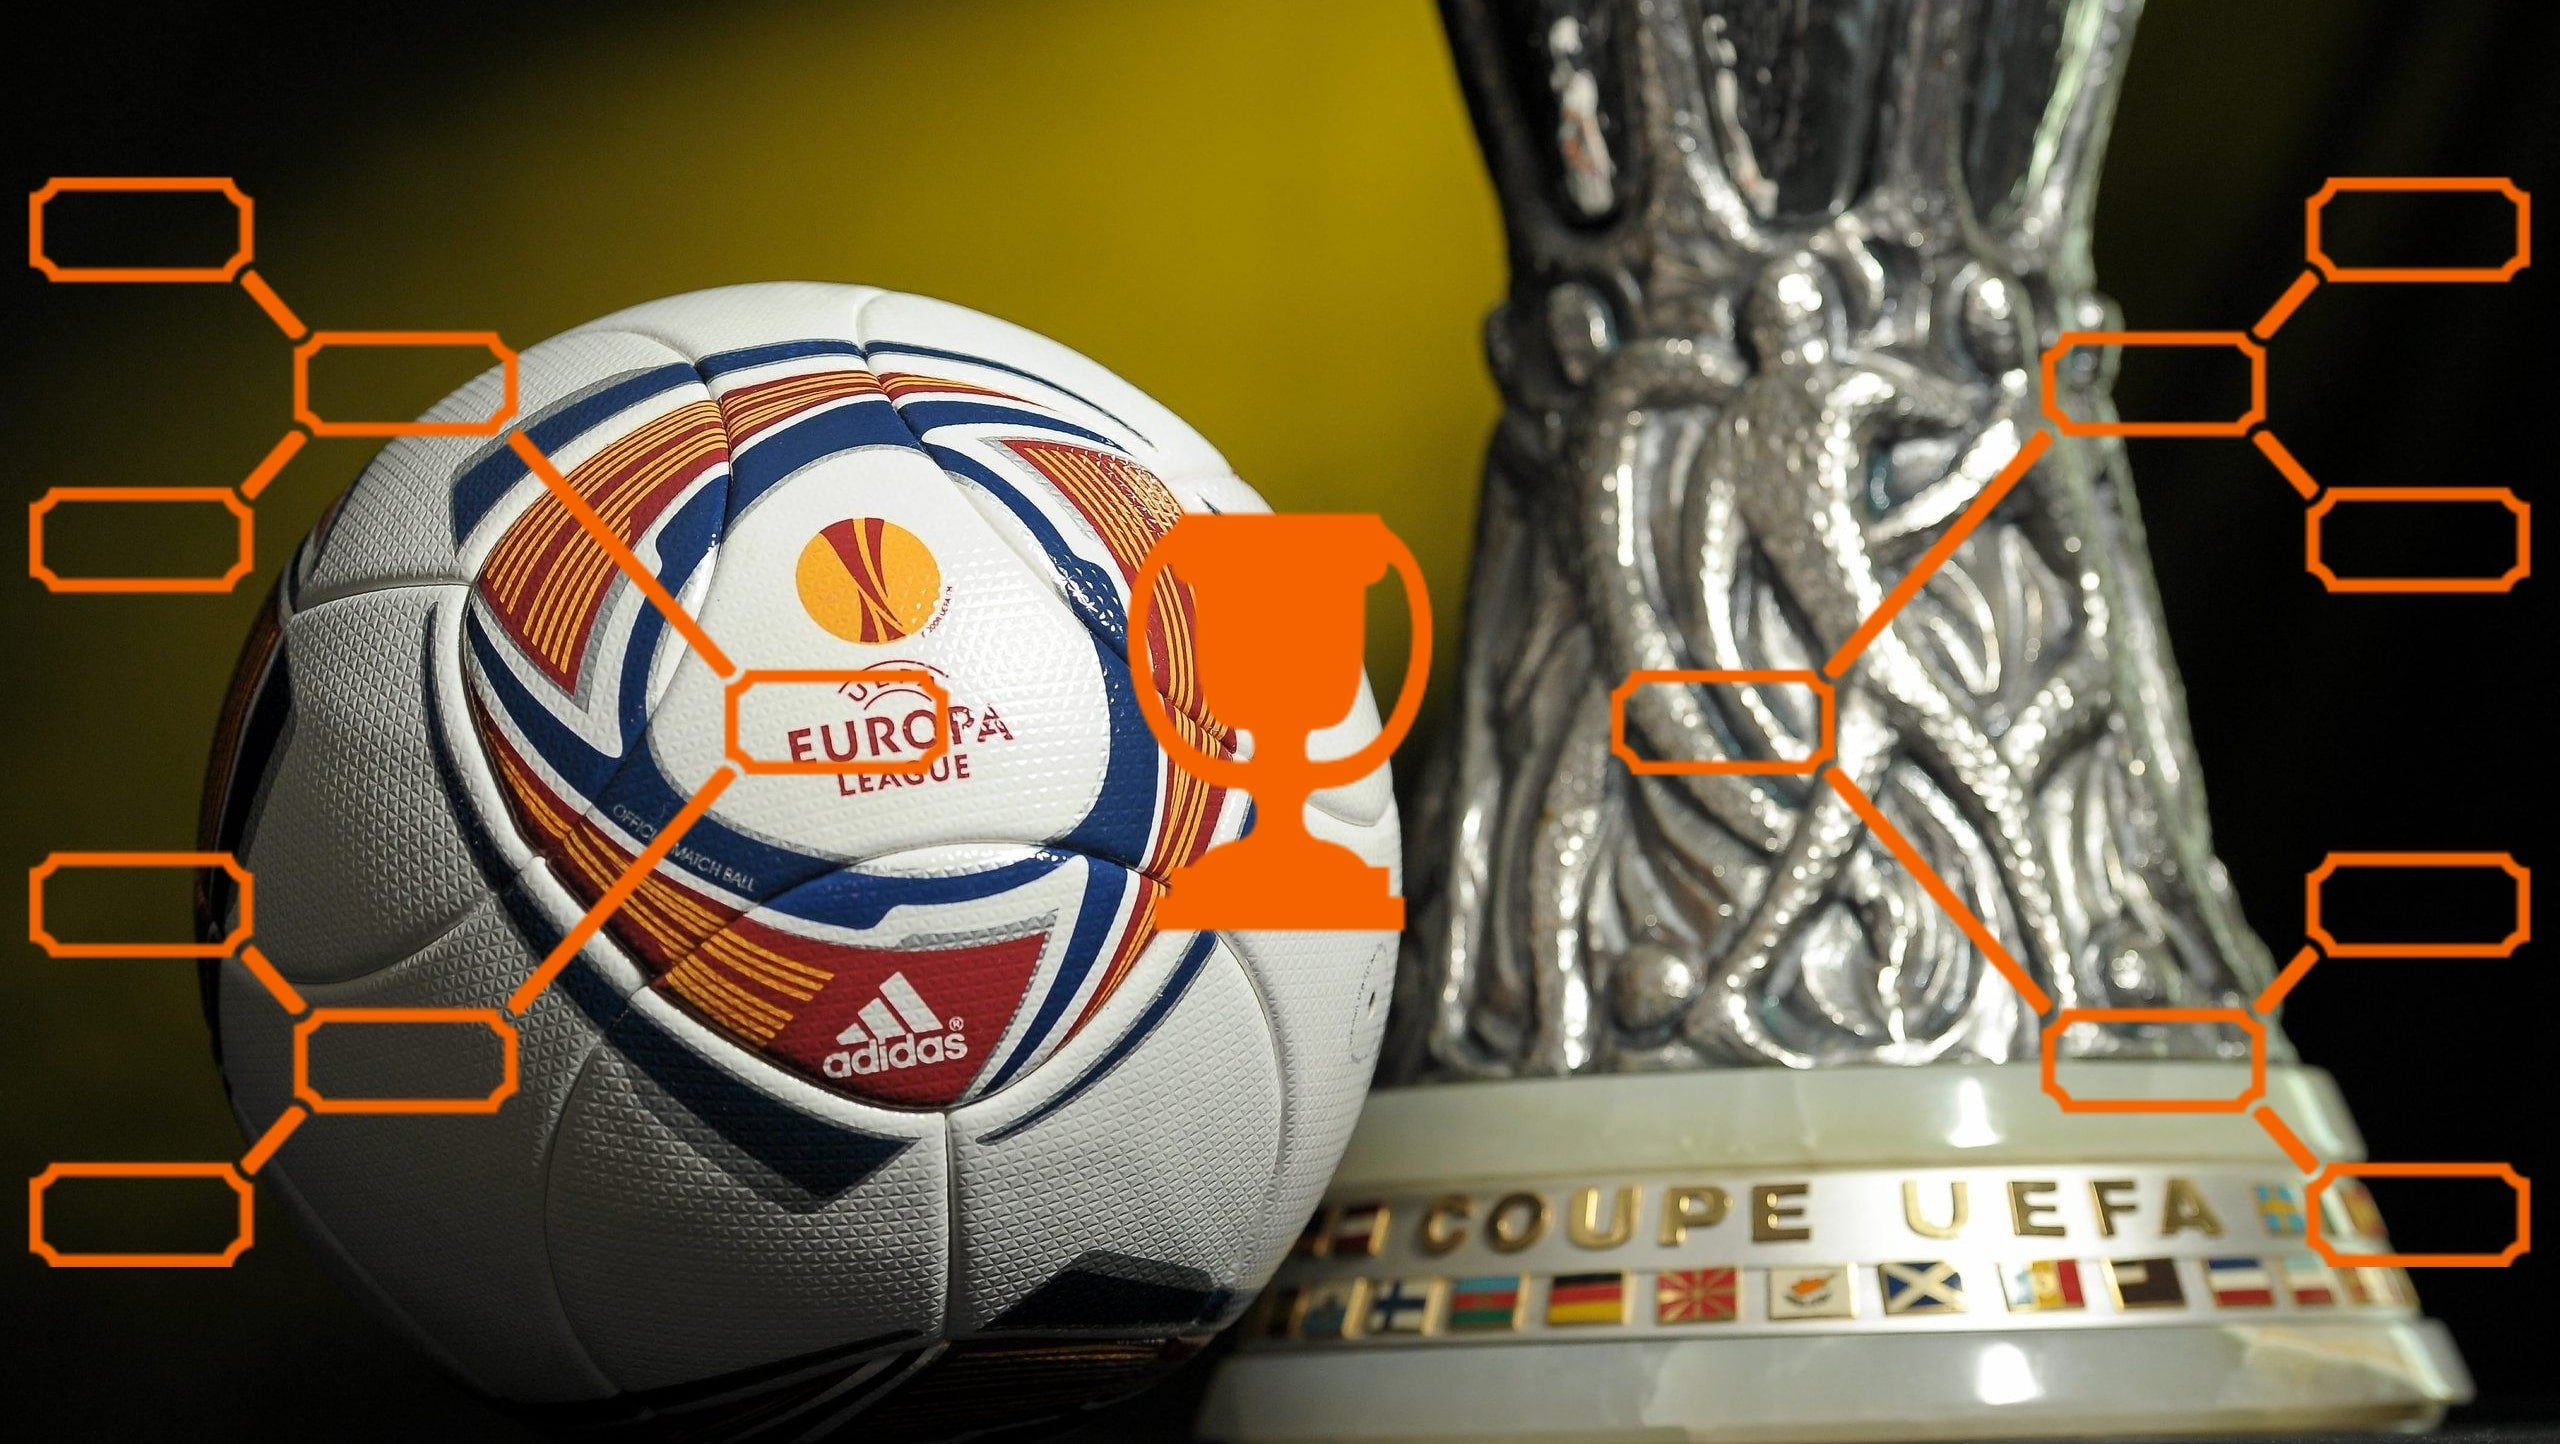 Europa League 2019/20: The Draws So Far